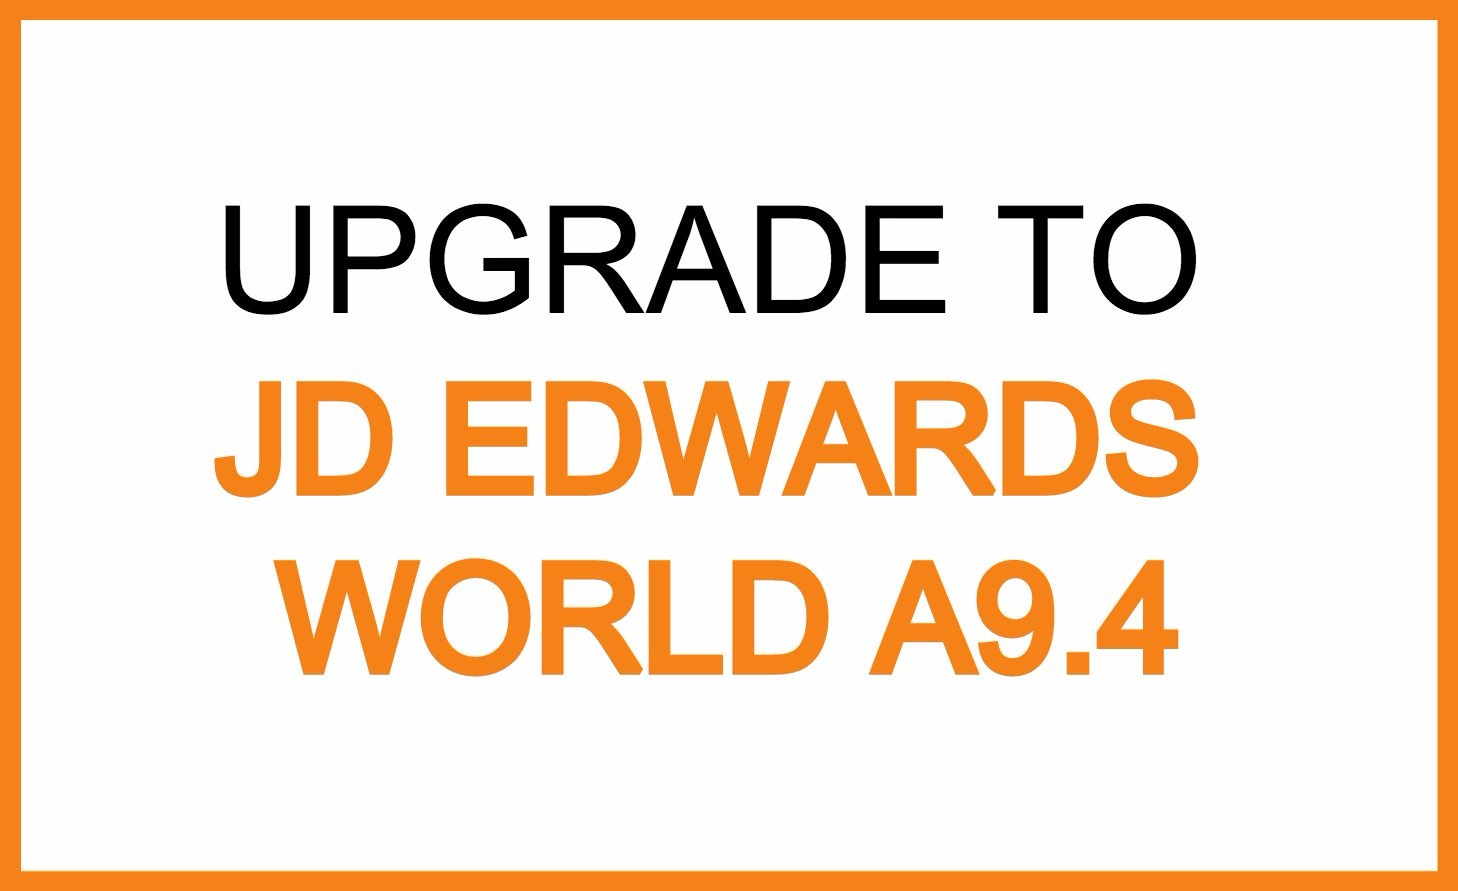 upgrade jde world a94.jpg